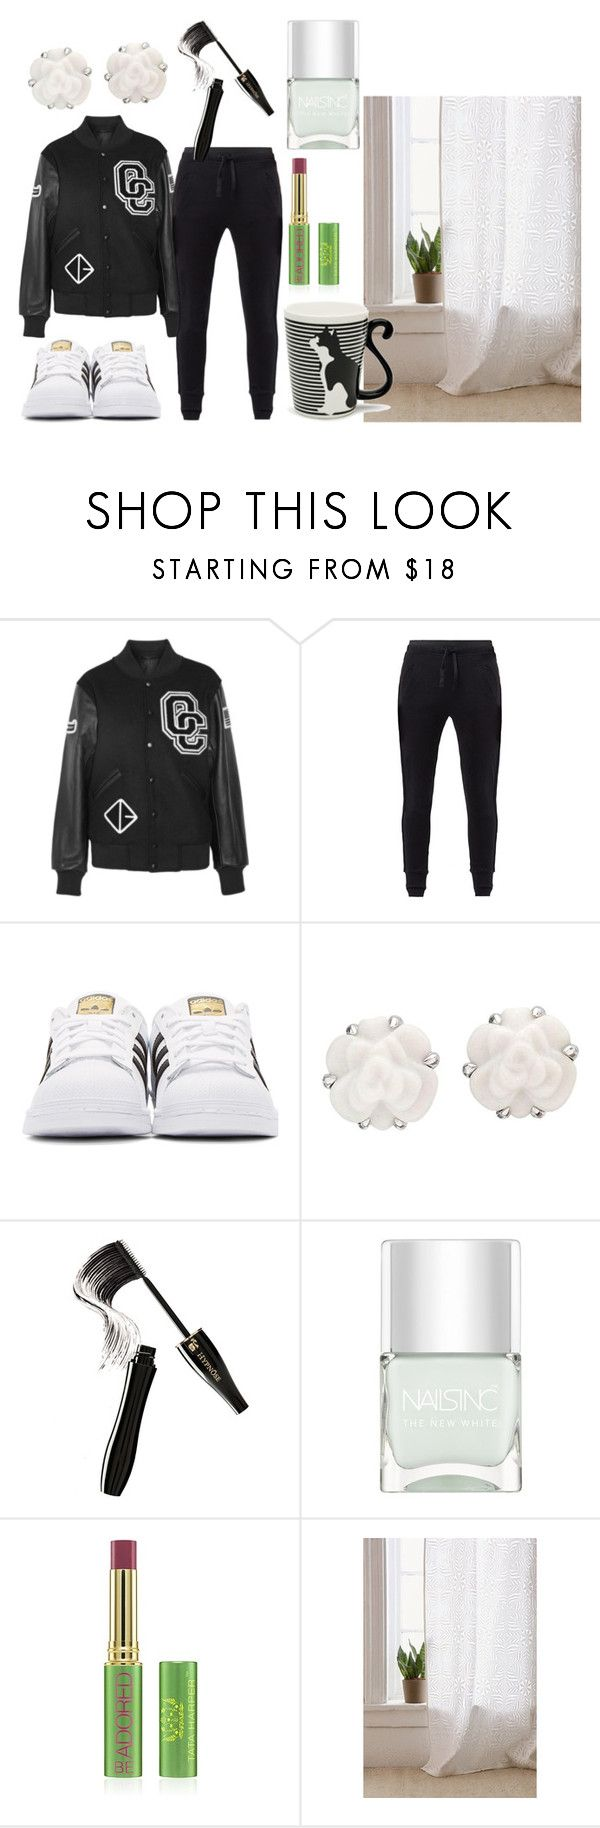 """A sorrir"" by de-garbelini ❤ liked on Polyvore featuring Opening Ceremony, MANGO, adidas Originals, Chanel, Lancôme, Nails Inc., Tata Harper, Urban Outfitters and Miya Company"